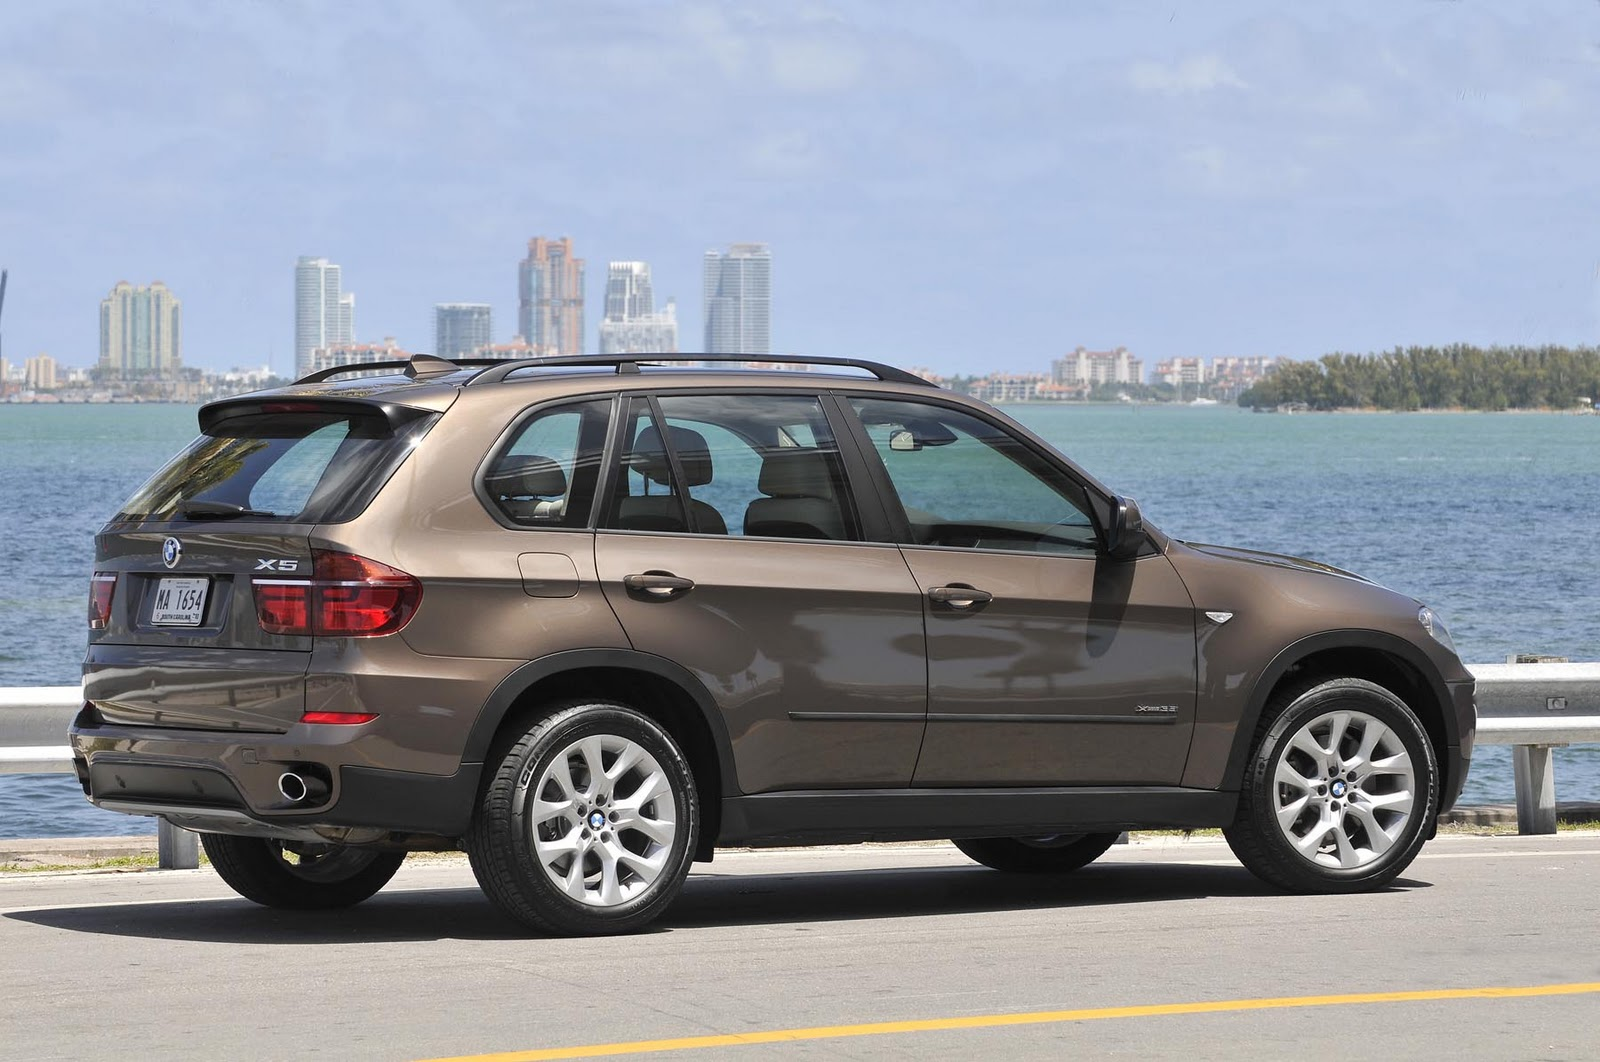 IN4RIDE BMW X6 GETS BENCH REAR SEAT X5 NEW RIMS